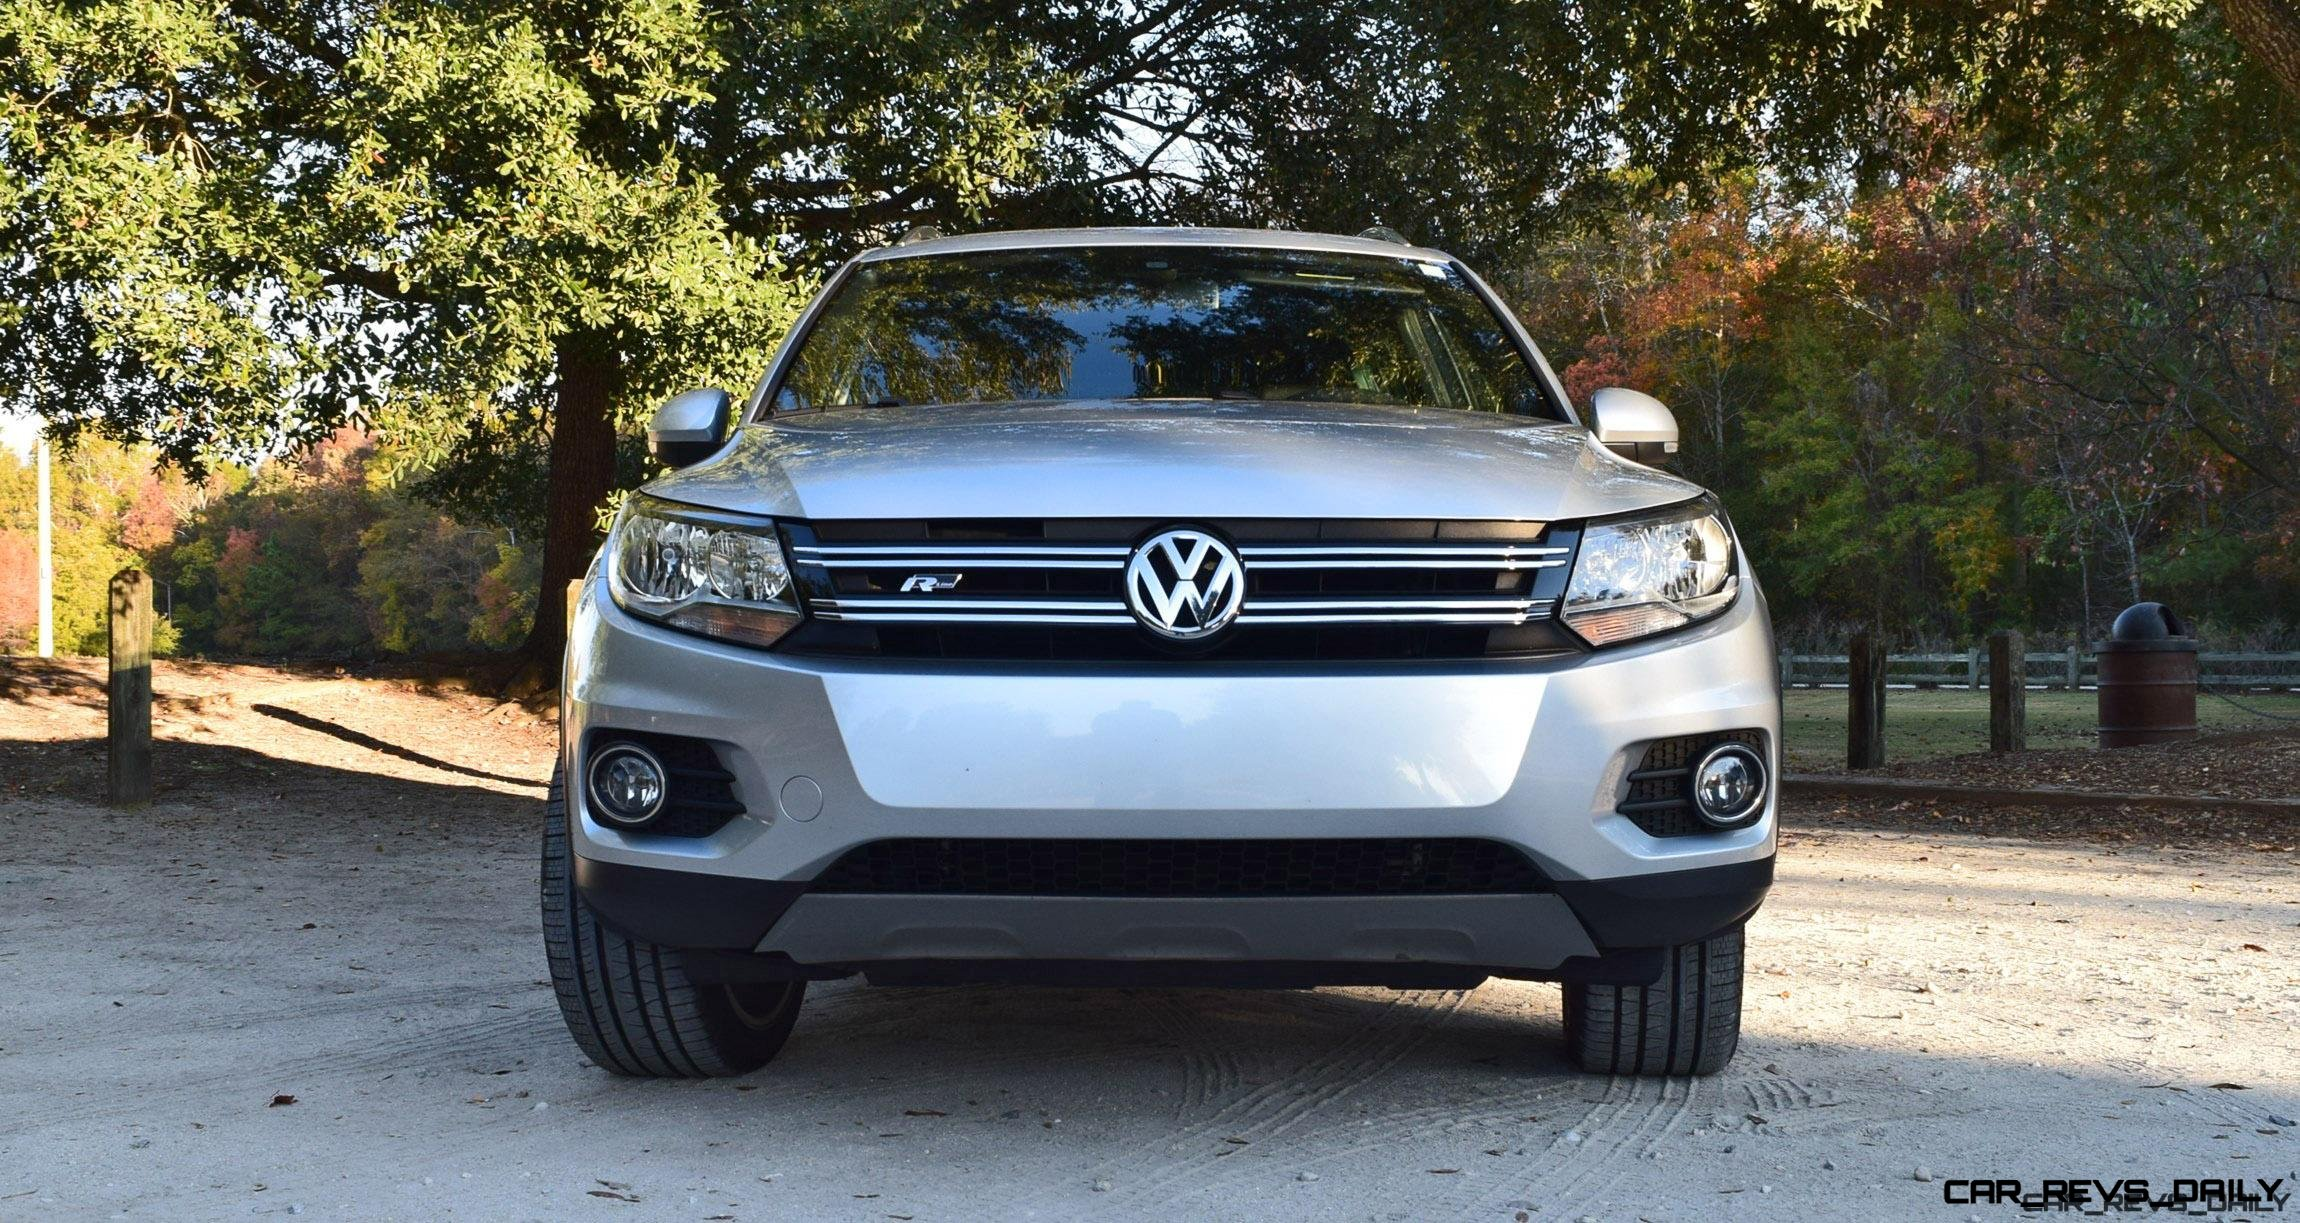 2016 Volkswagen TIGUAN R-Line 4Motion - Road Test Review - By Tom